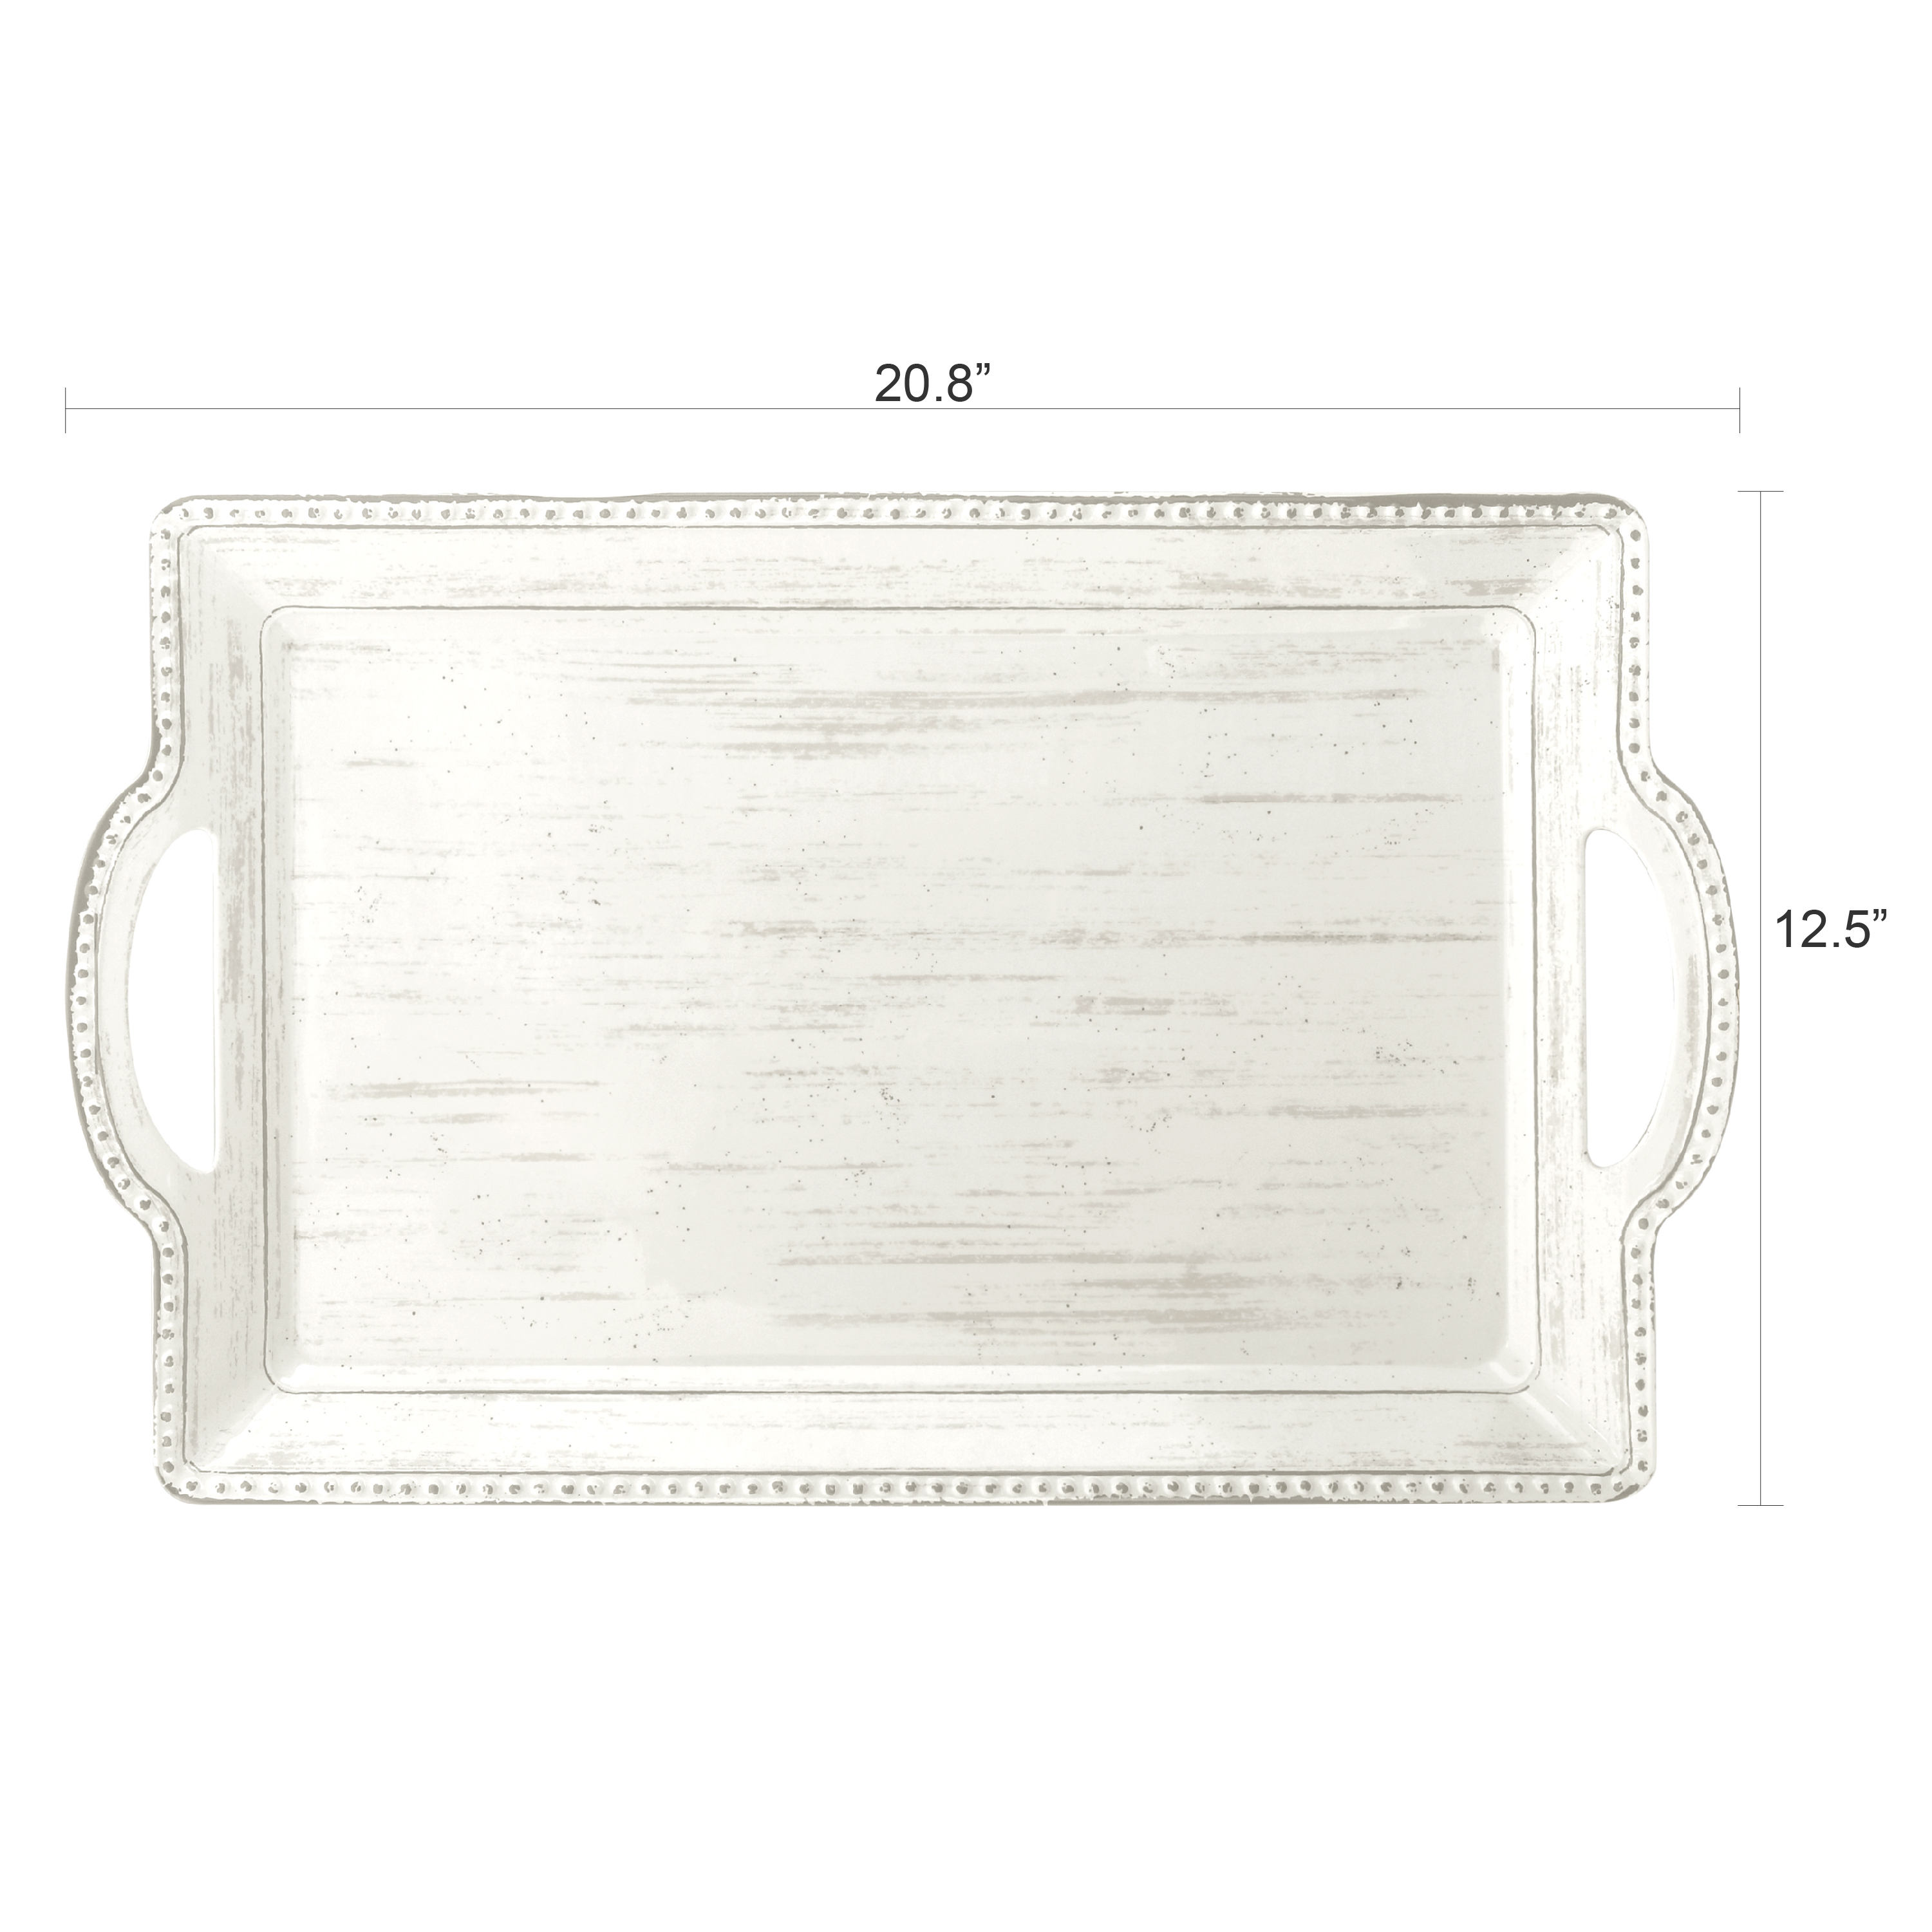 French Country Serving Tray with Handles, Oyster slideshow image 5